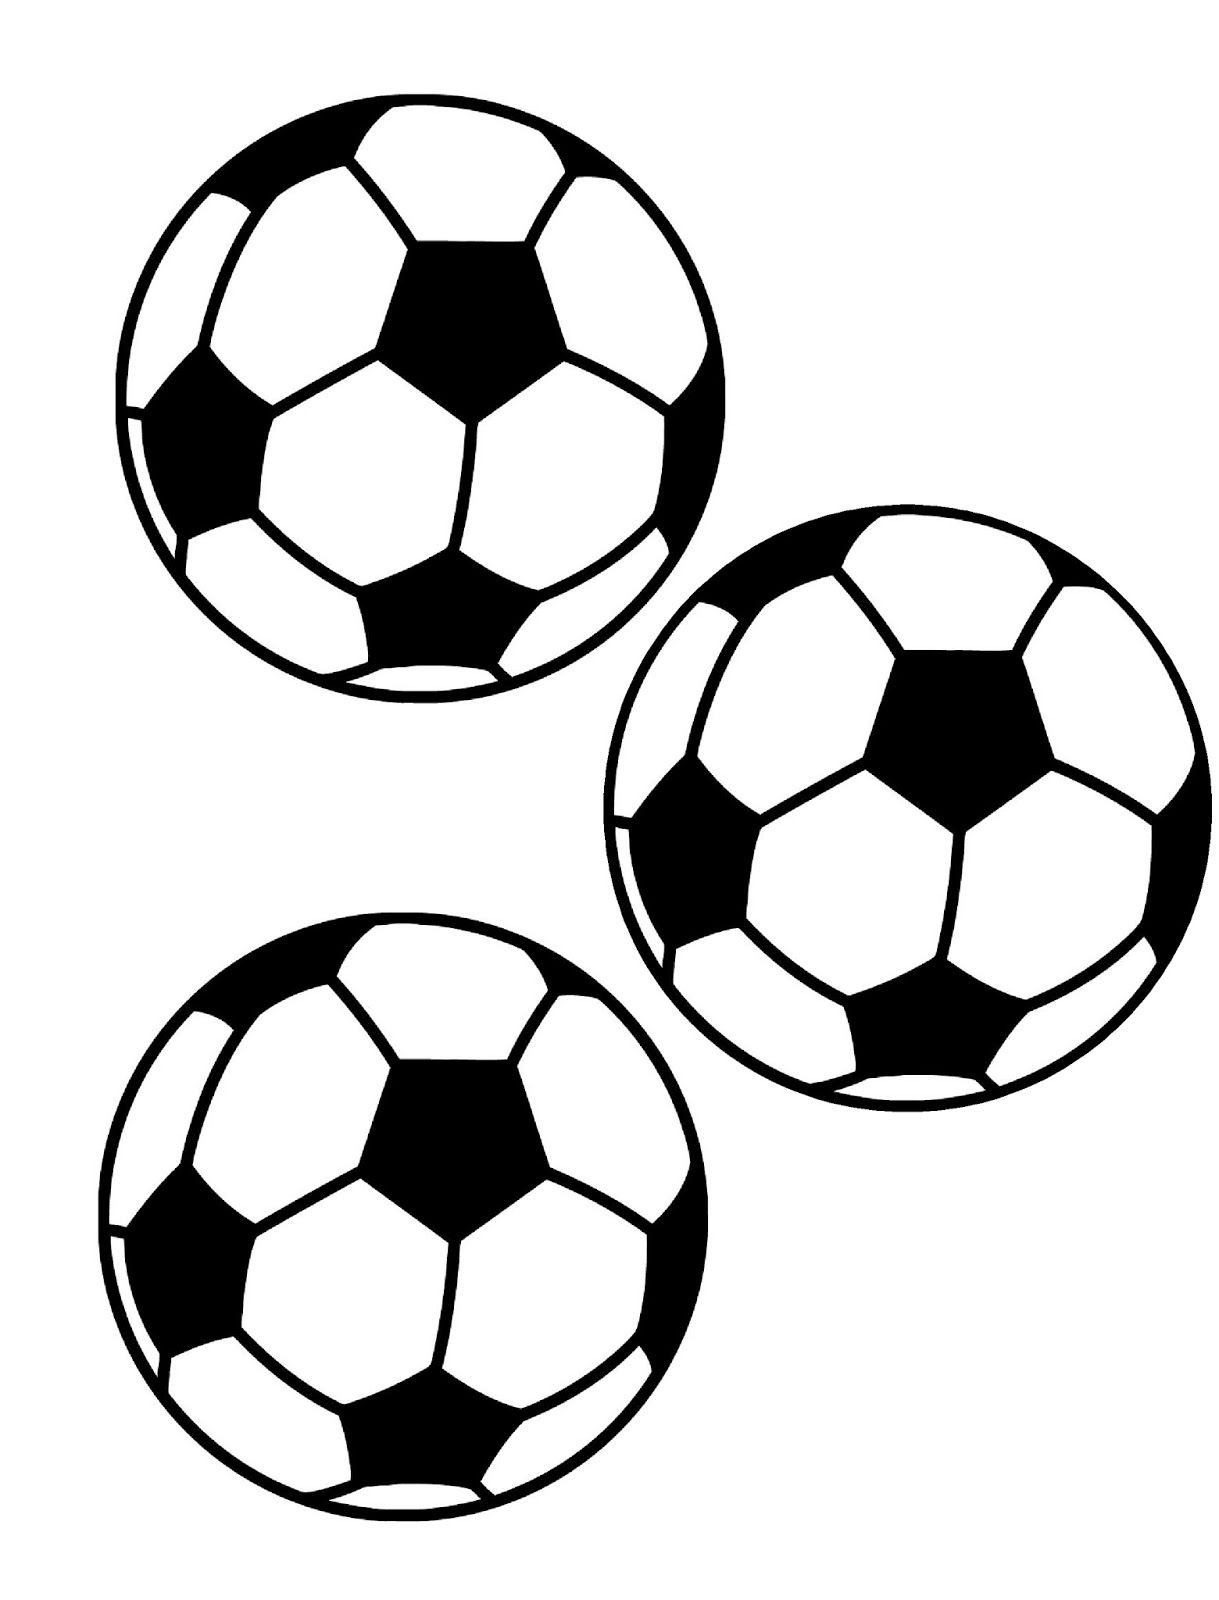 Balls clipart printable. Picture of a soccer